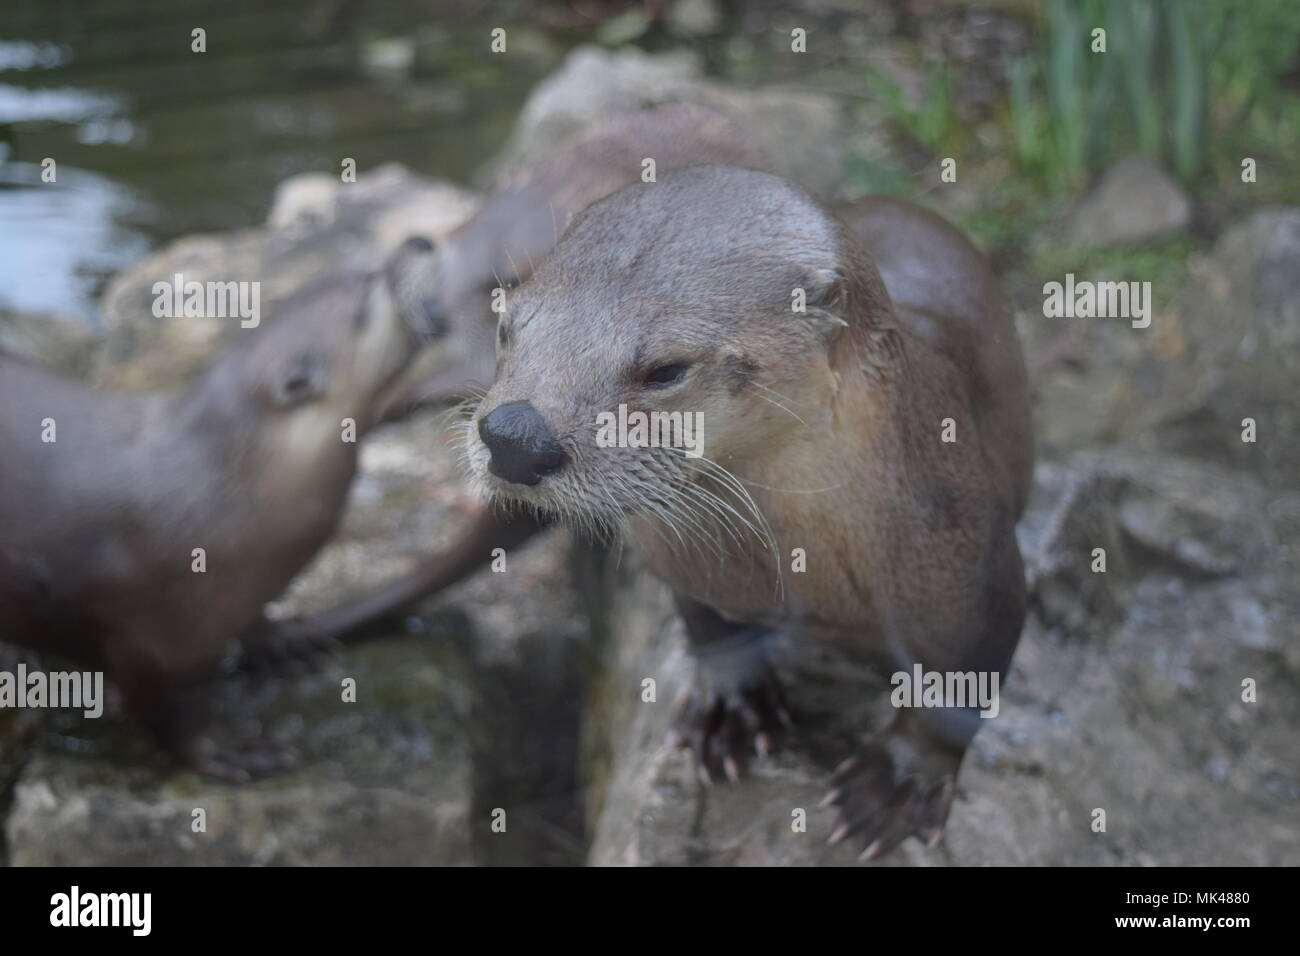 Otter family on the bank of water - Stock Image